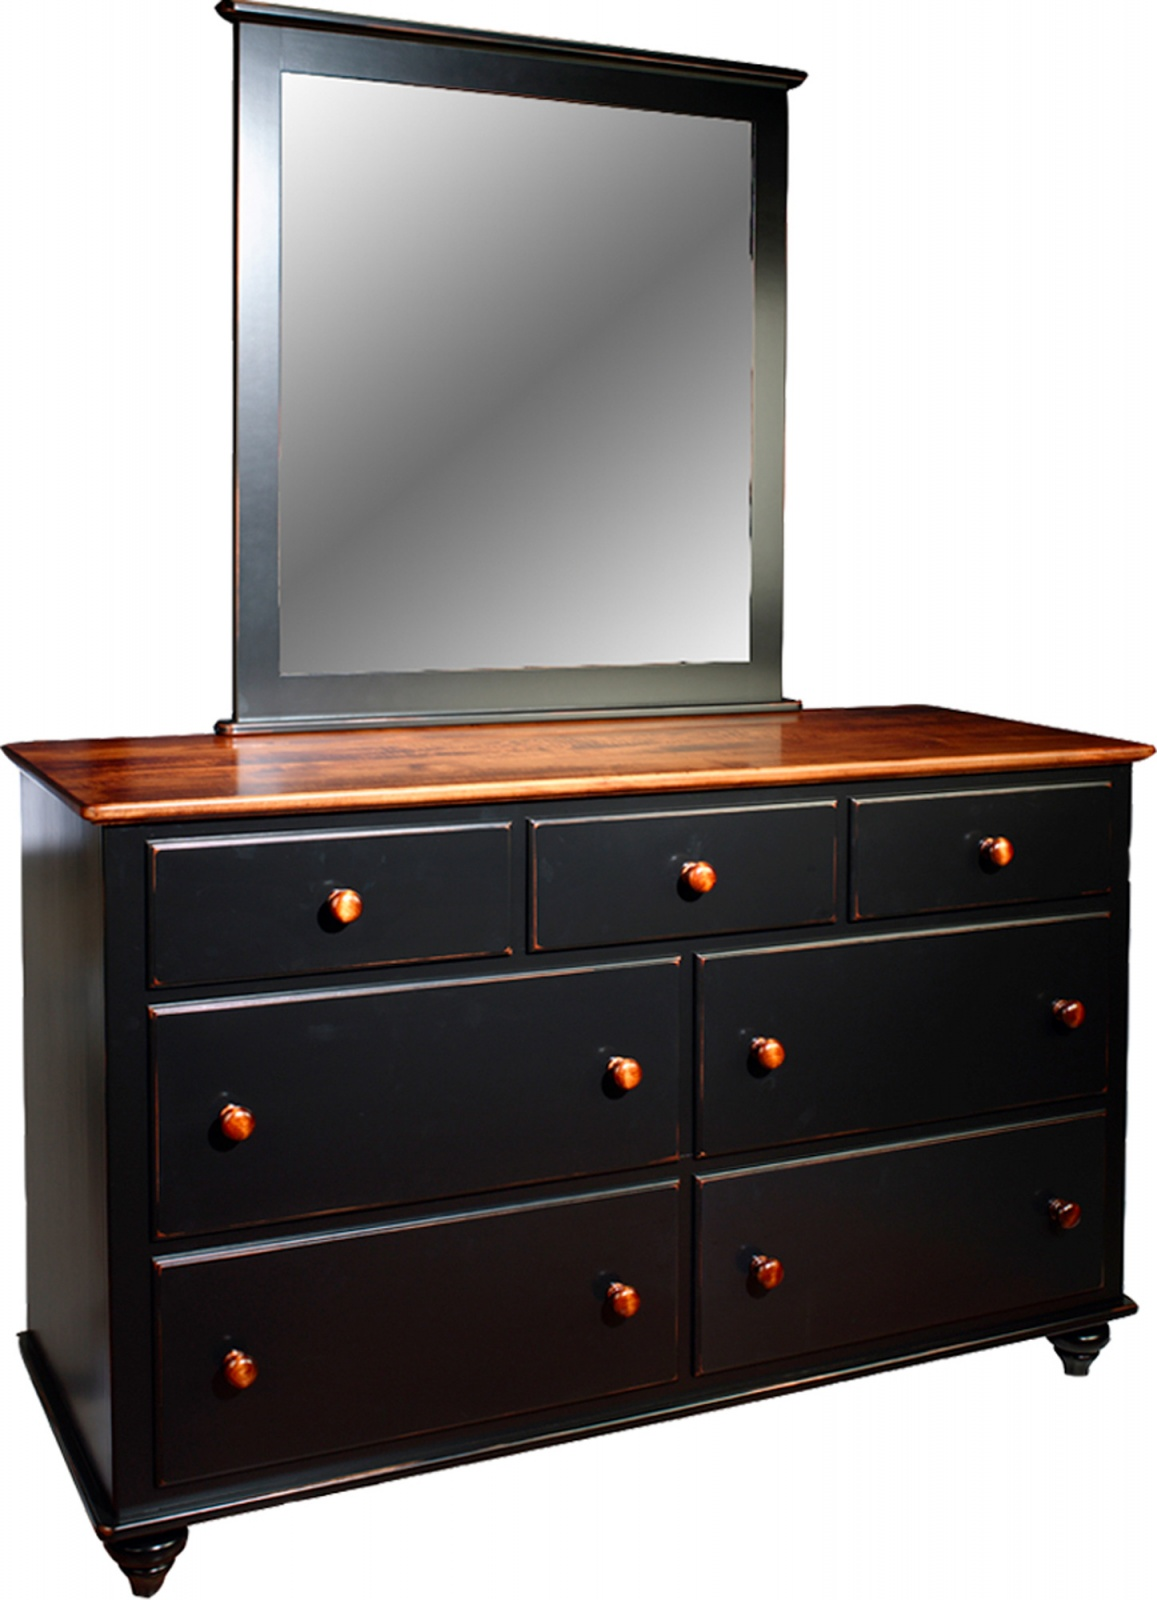 WB-1754 Dresser with MI-1763 Mirror.jpg